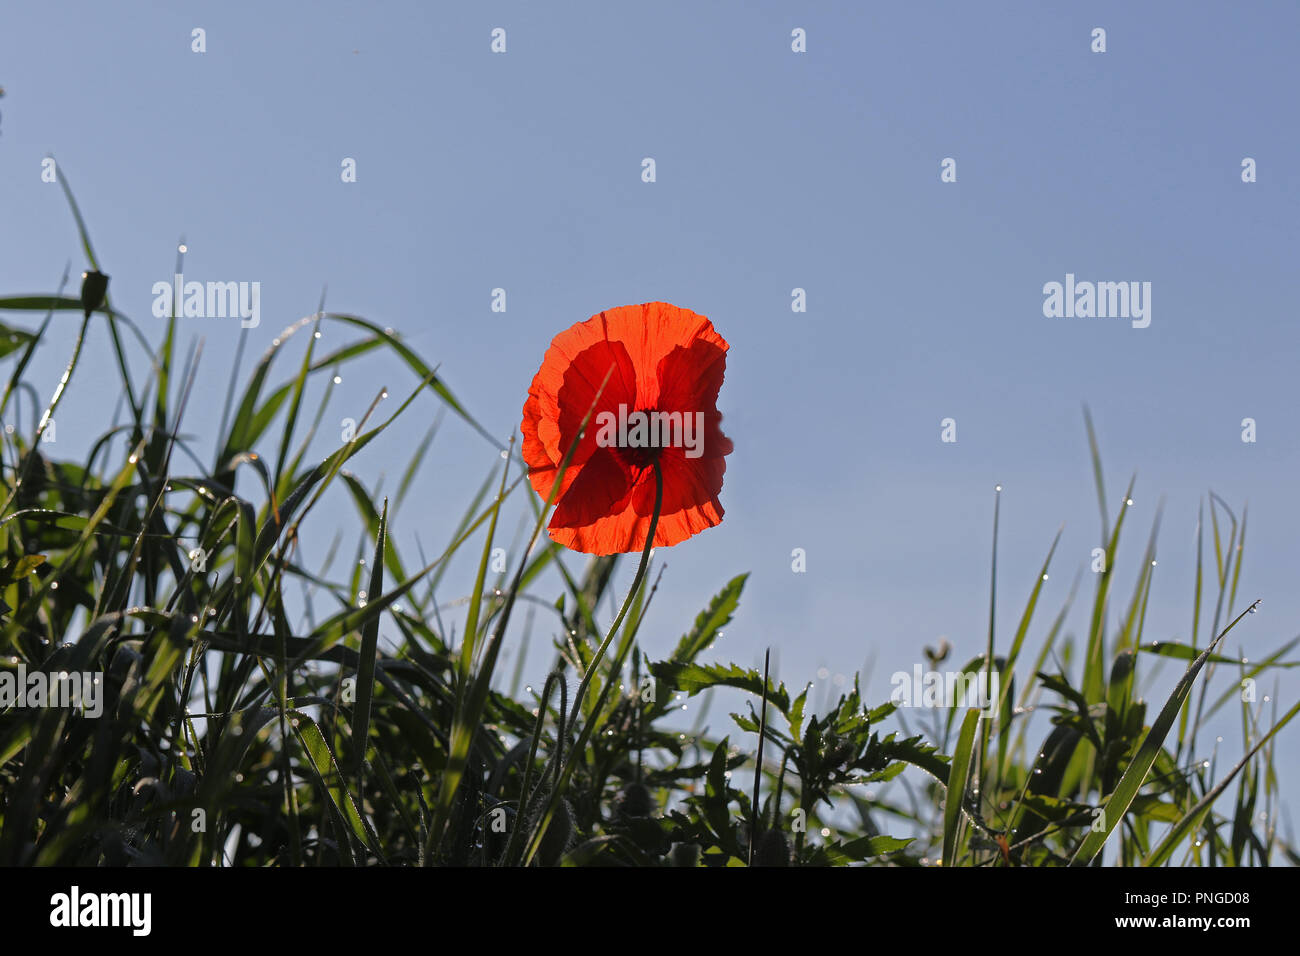 Poppy flower or papaver rhoeas with light behind in Italy remembering 1918 the Flanders Fields poem and 1944 The Red Poppies on Monte Cassino song - Stock Image